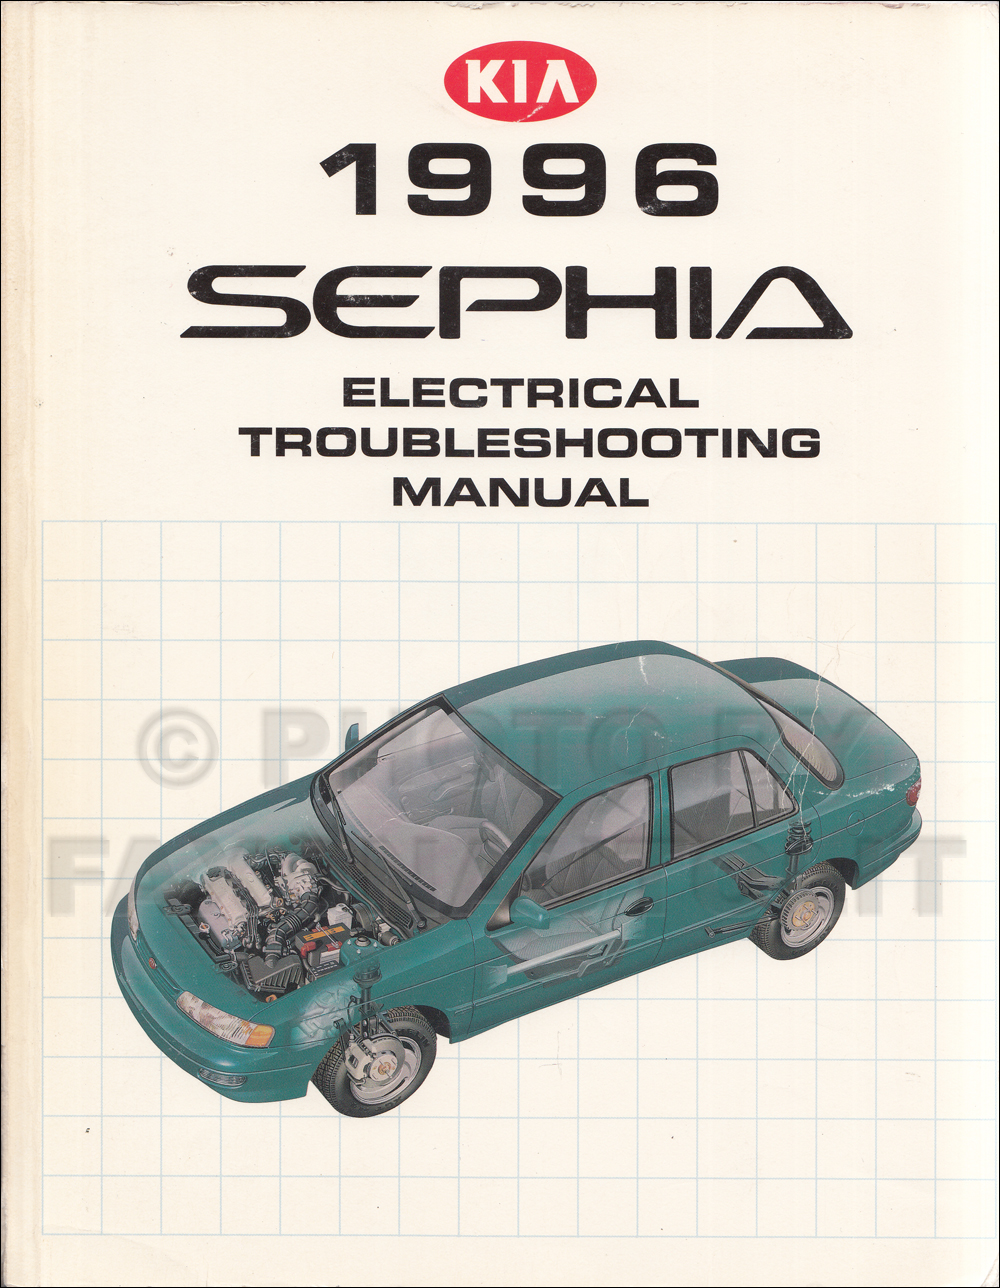 1996 Kia Sephia Electrical Troubleshooting & Vacuum Routing Manual